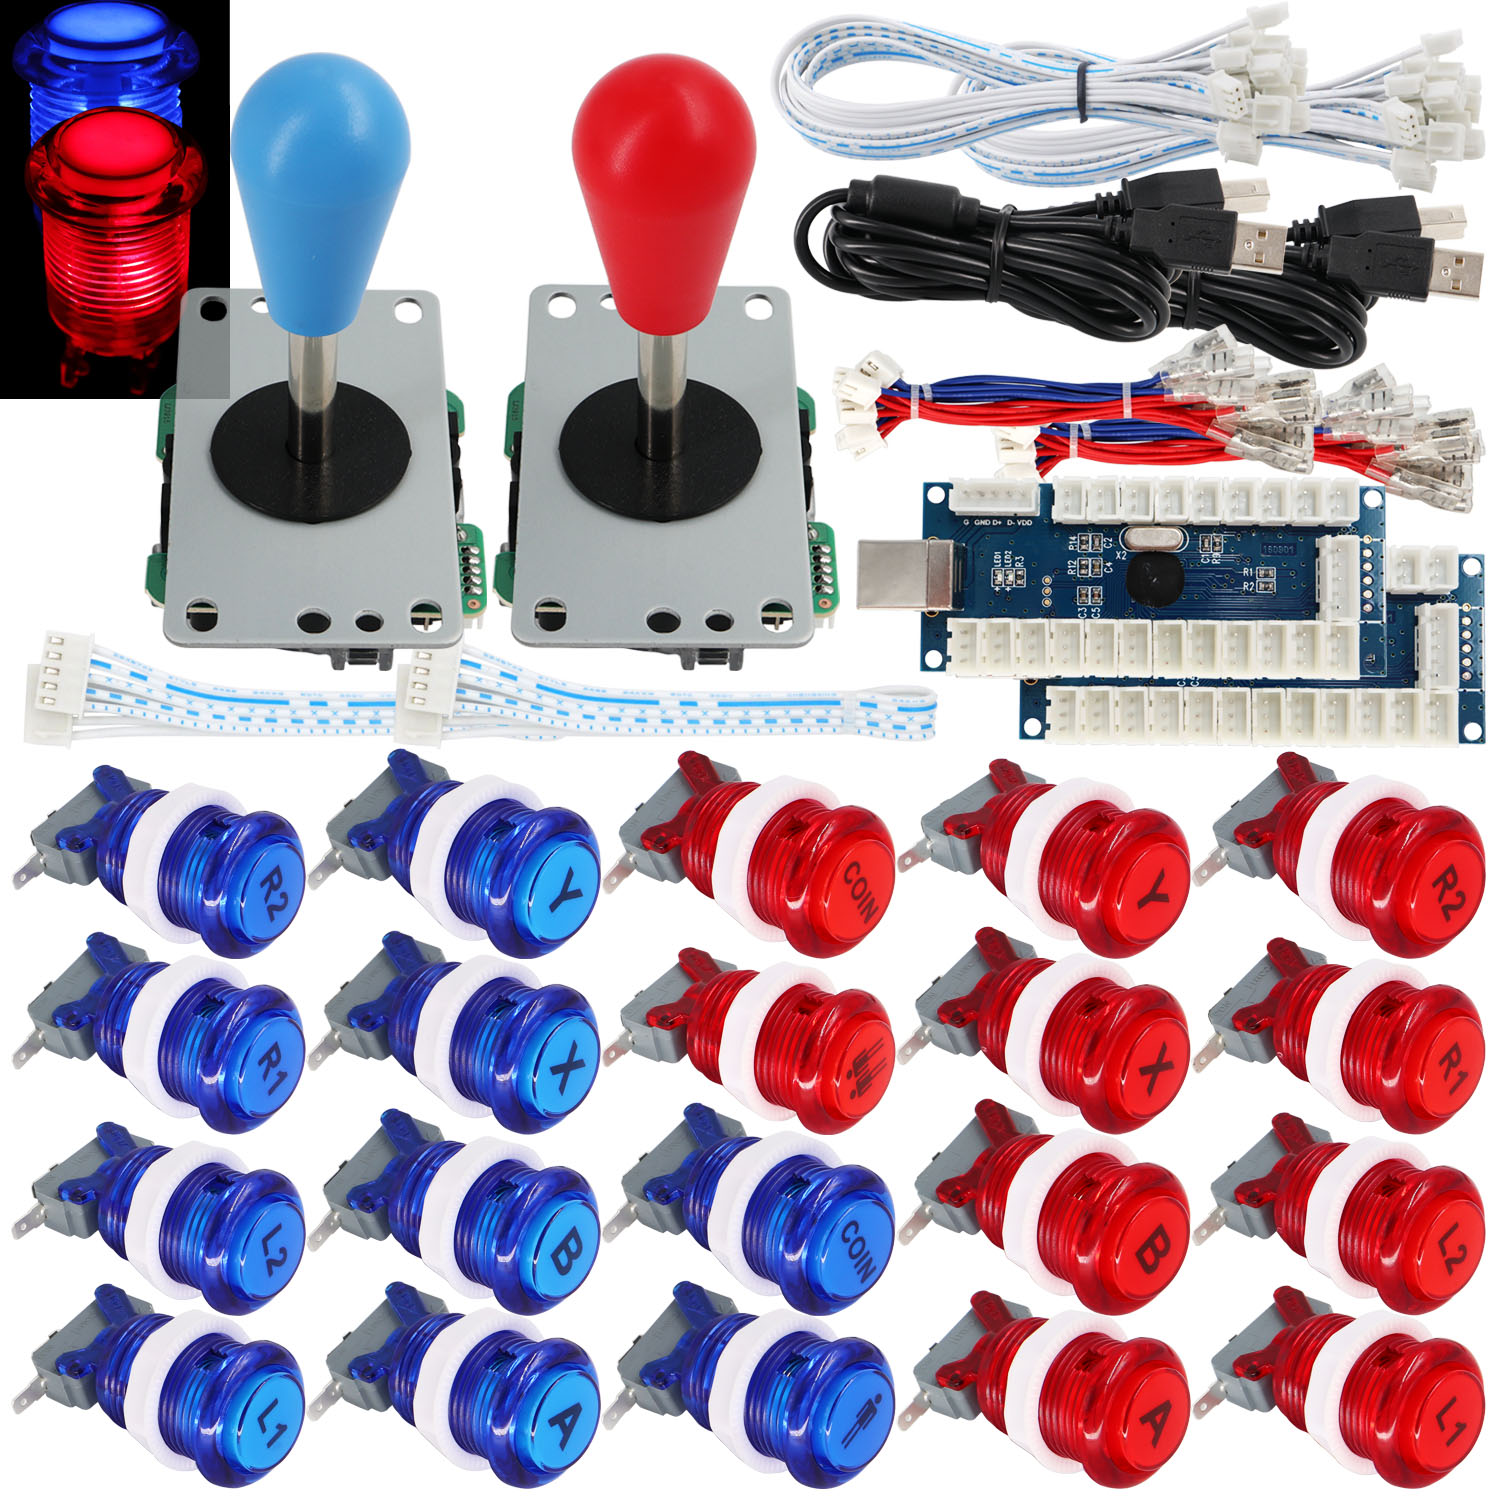 SJ@JX 2 Player Arcade Game Stick DIY Kit Button LED 8 Way Joystick USB Encoder Cable Controller for MAME Raspberry Pi